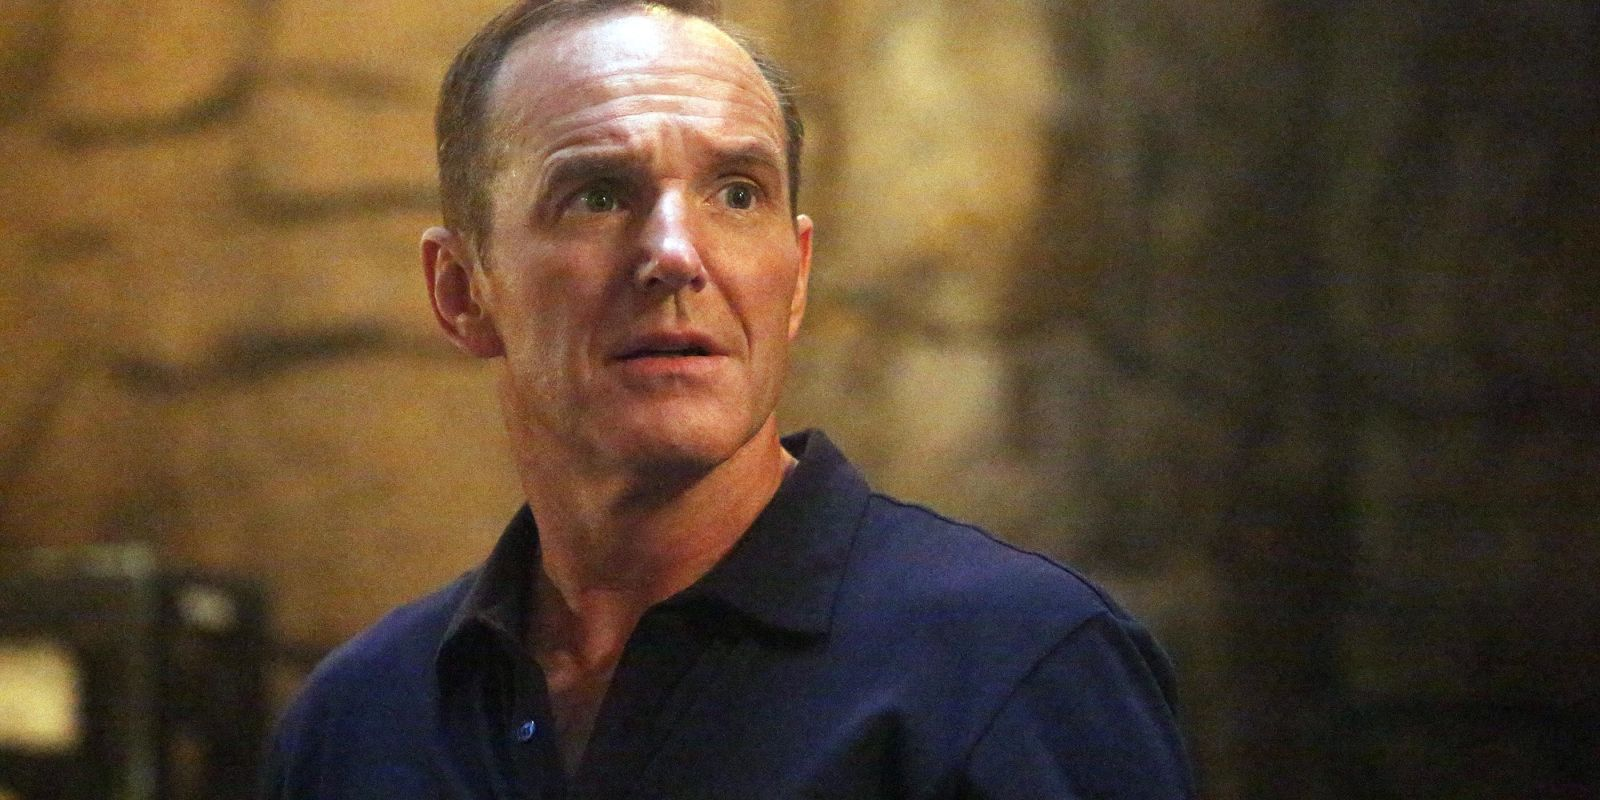 The Agents of SHIELD team are finally confronted with that prophecy